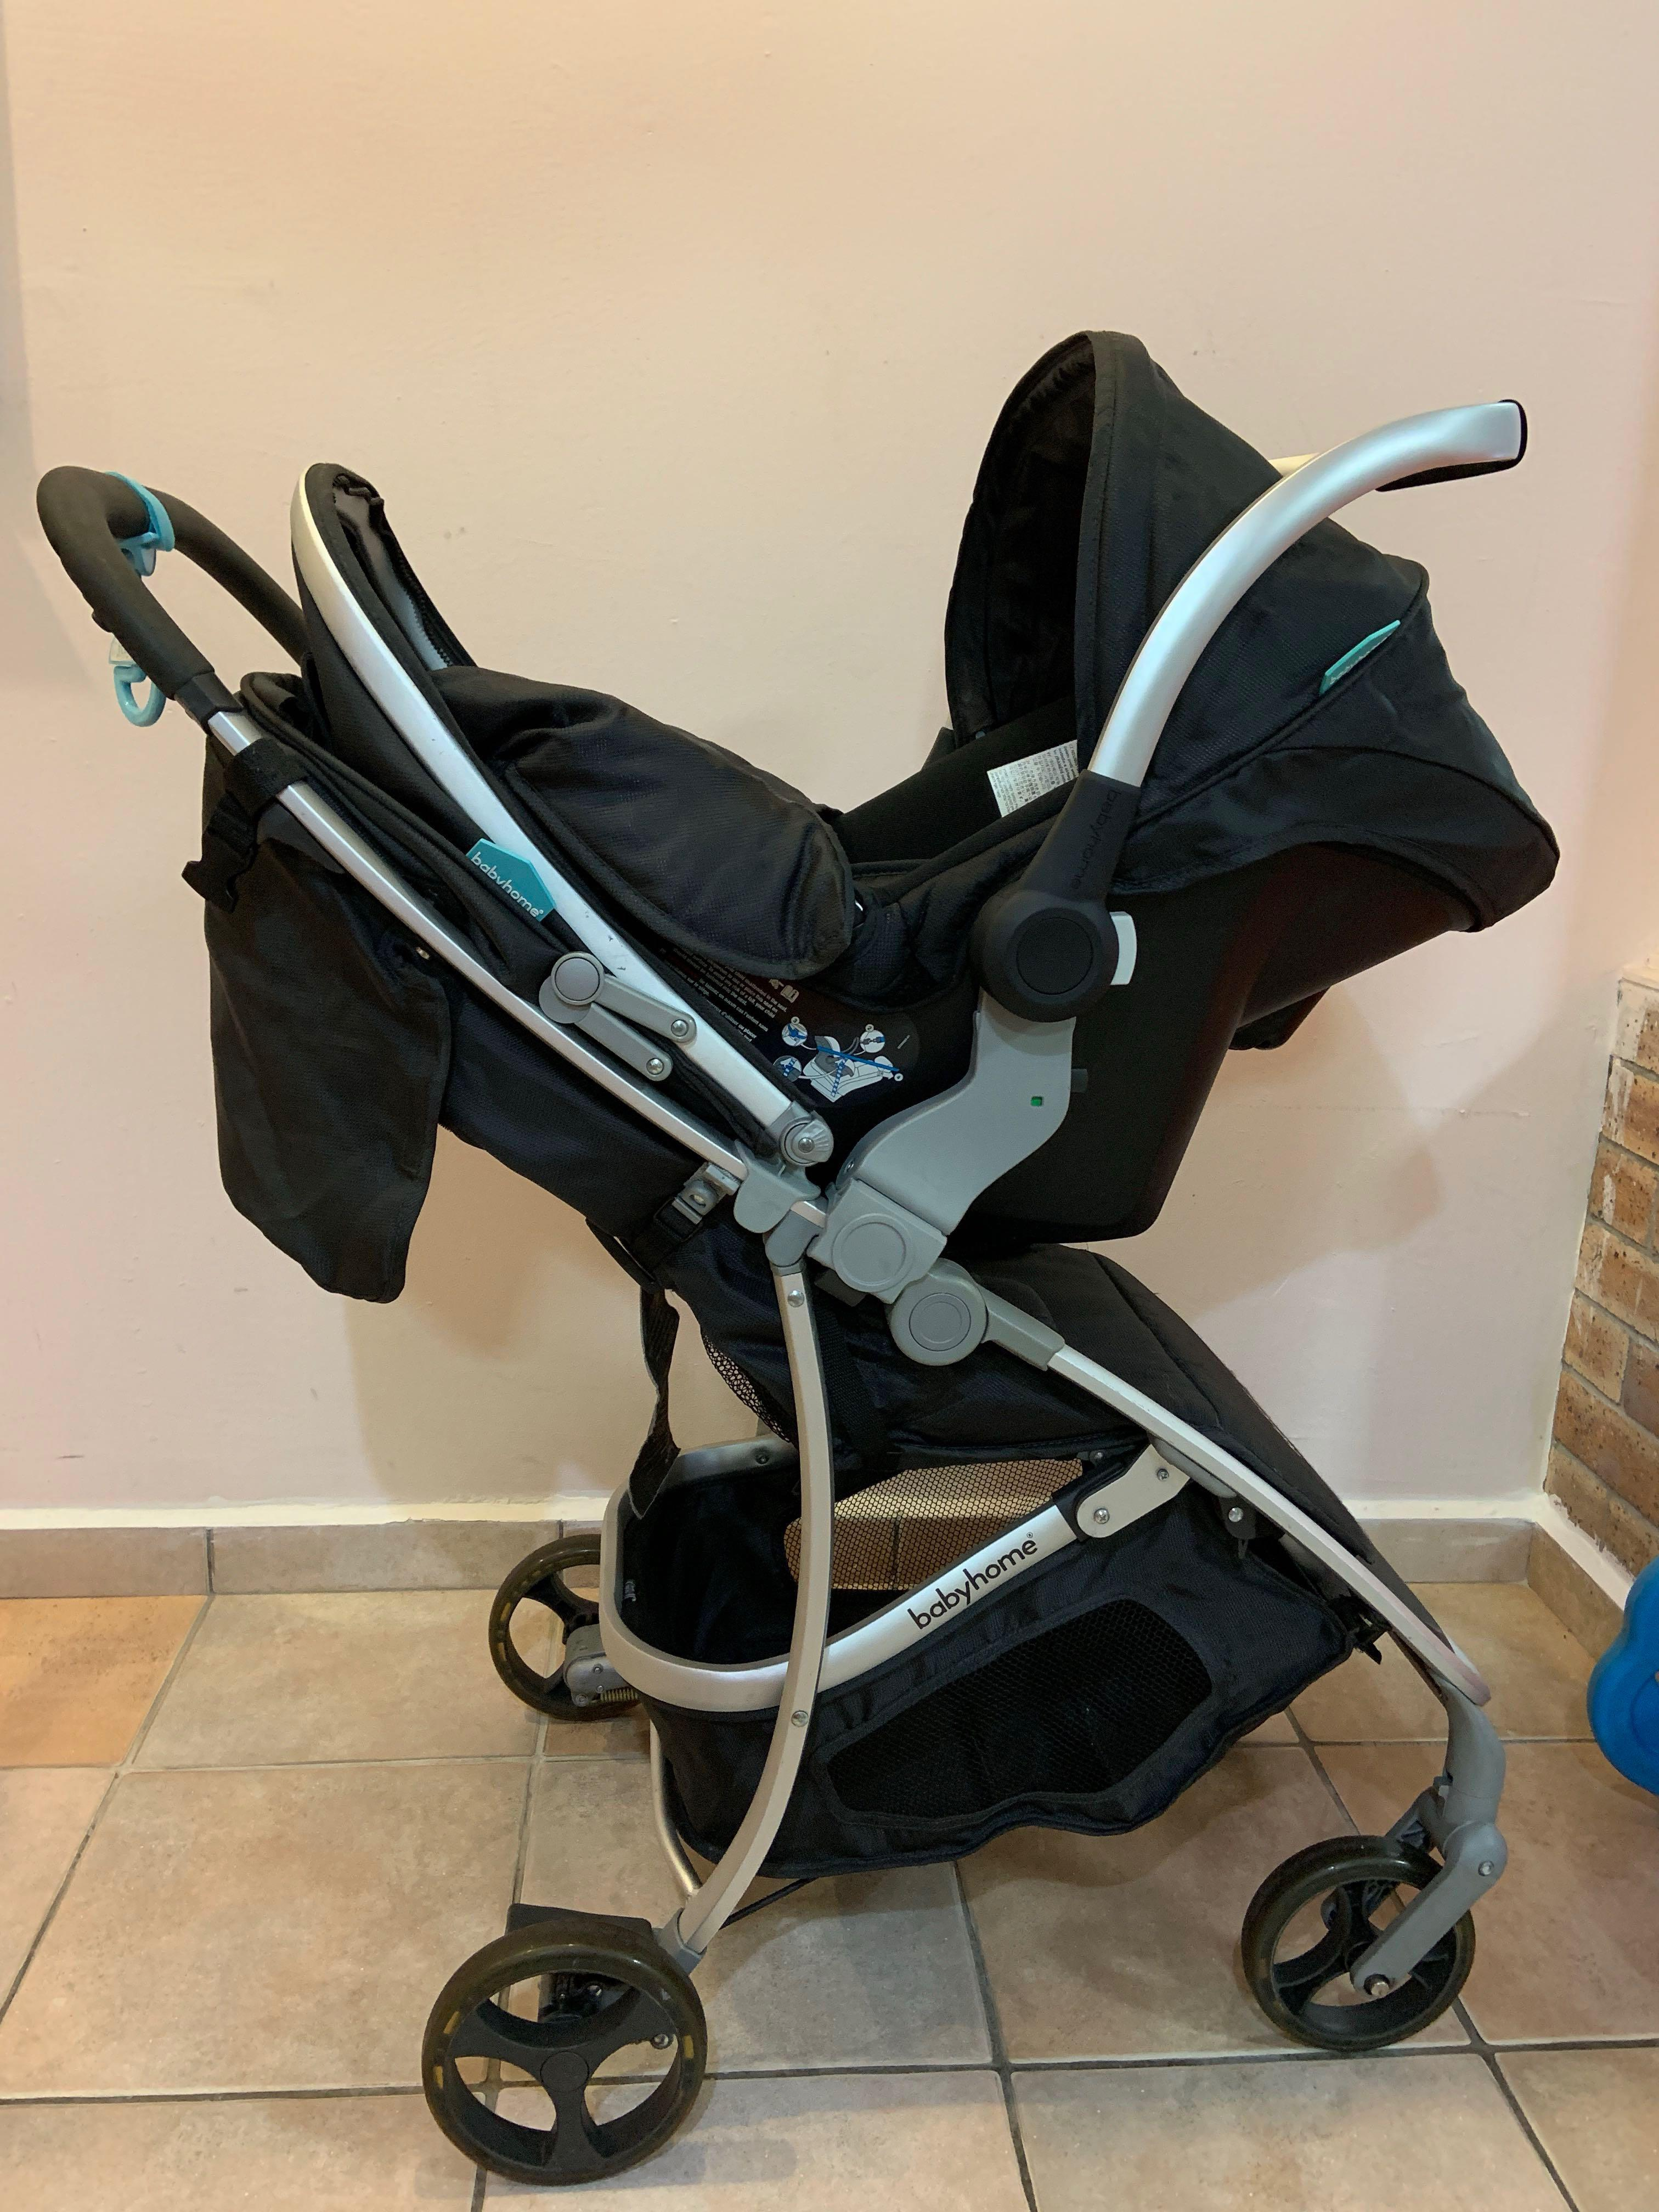 Baby Home Graco Car Seat Adapter for Emotion